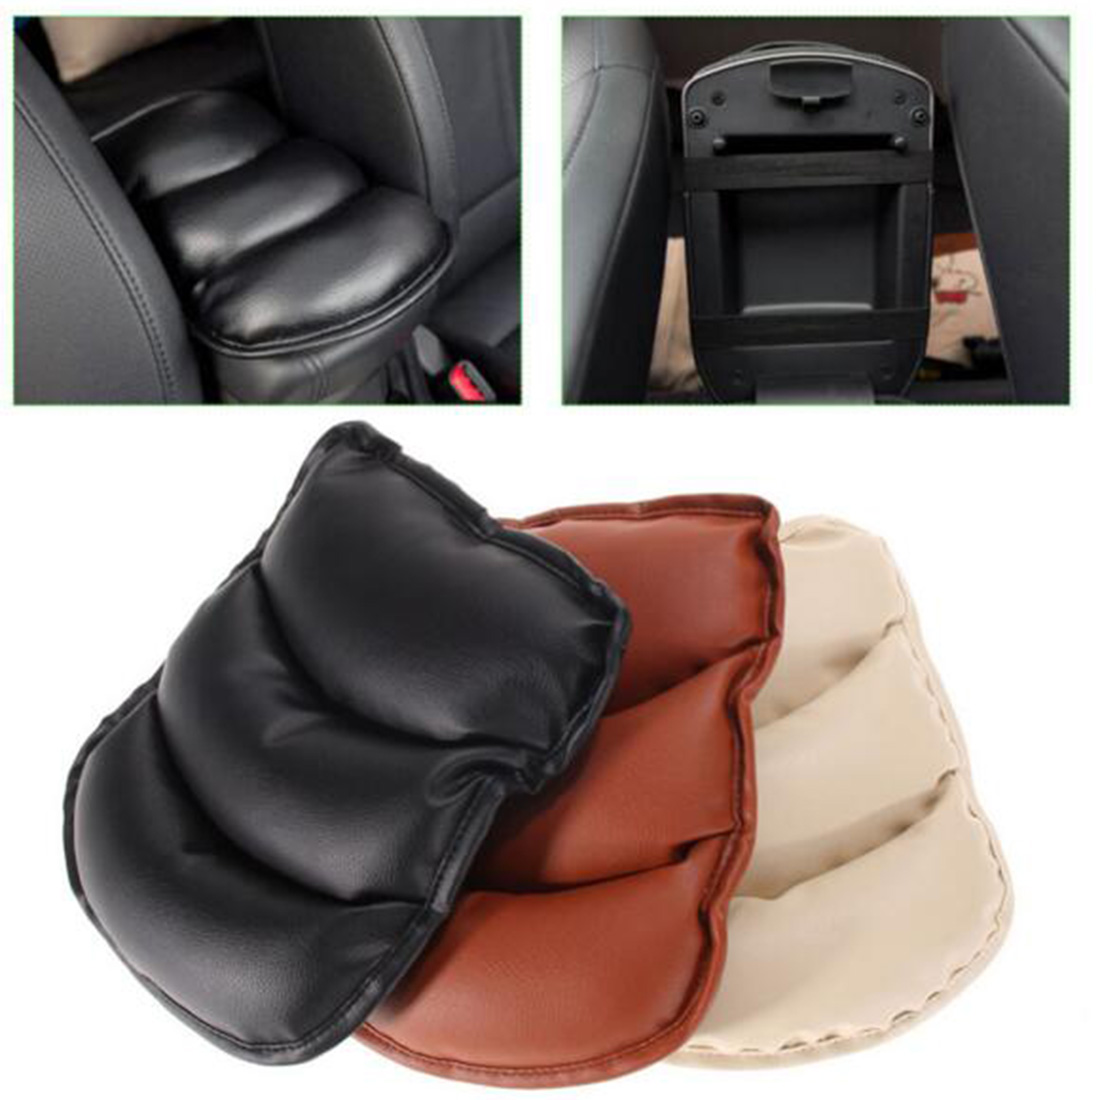 Car Armrests Pads Cover Vehicle Auto Center Console Arm Rest Seat Box Padding Protective Case Soft(China (Mainland))